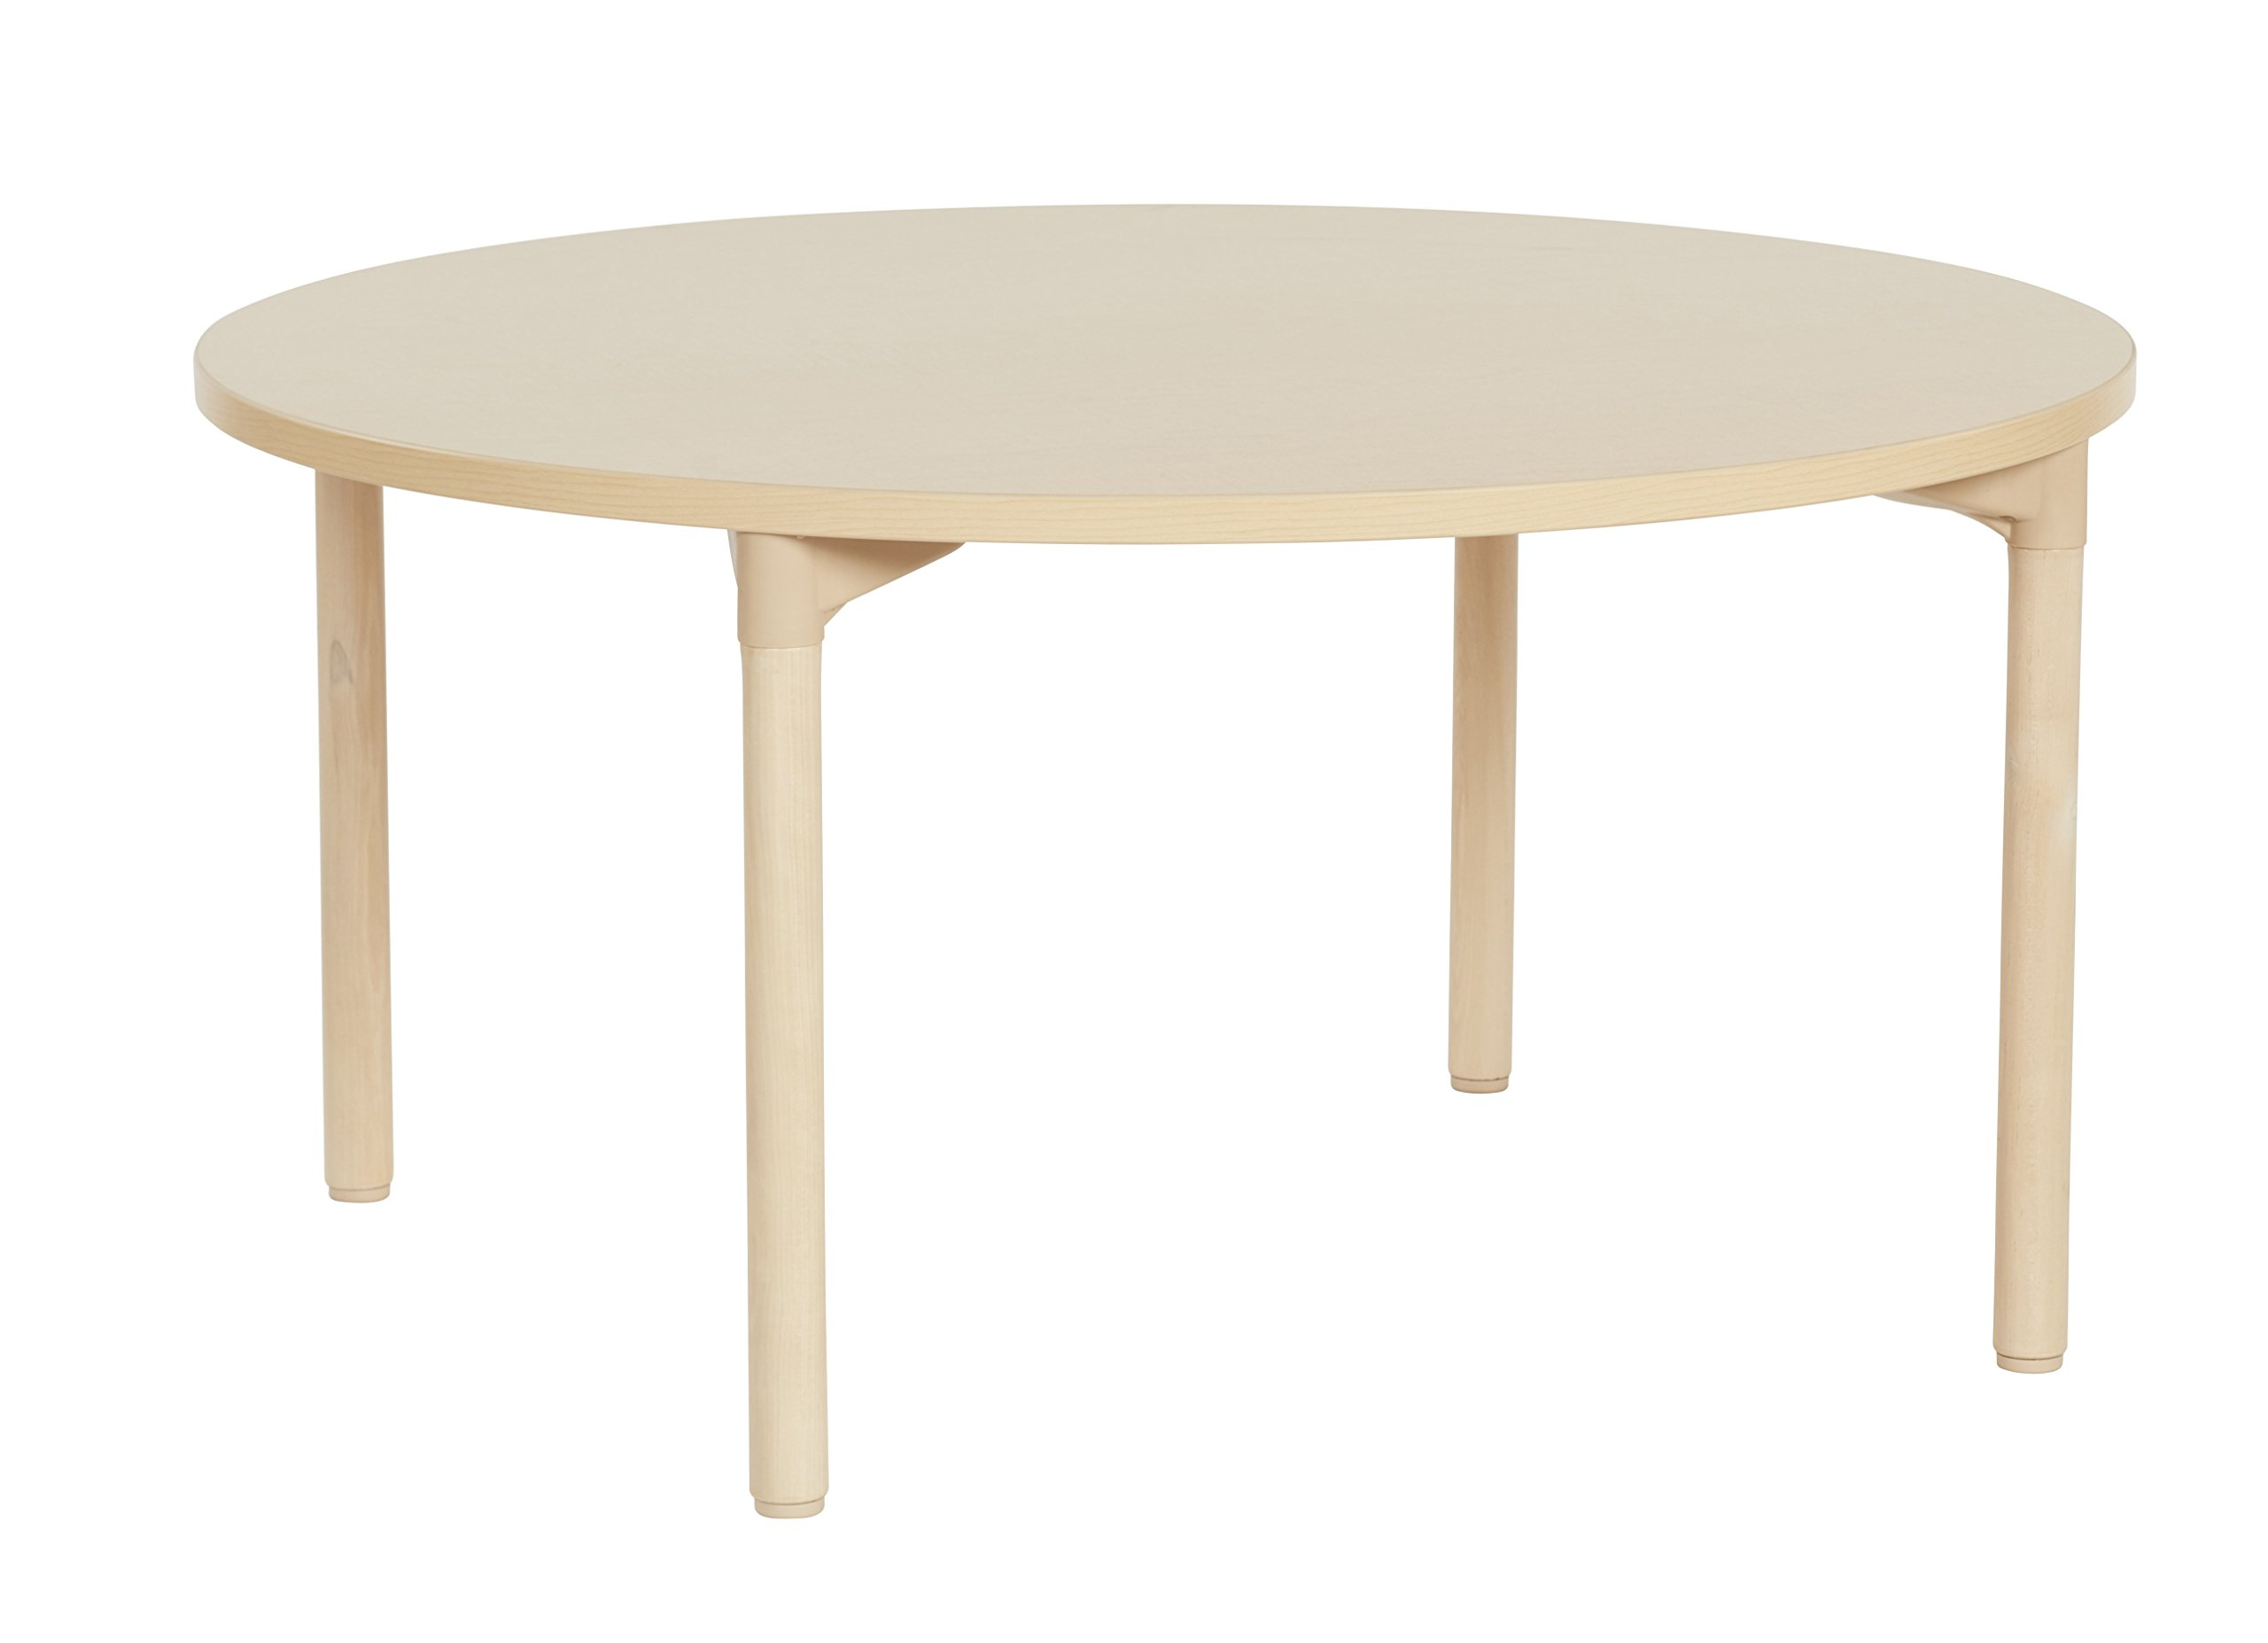 ECR4Kids 48'' Round Maple All-Purpose School Activity Table with Thermo-Fused Edge and Wood Legs (20'' Leg Height)